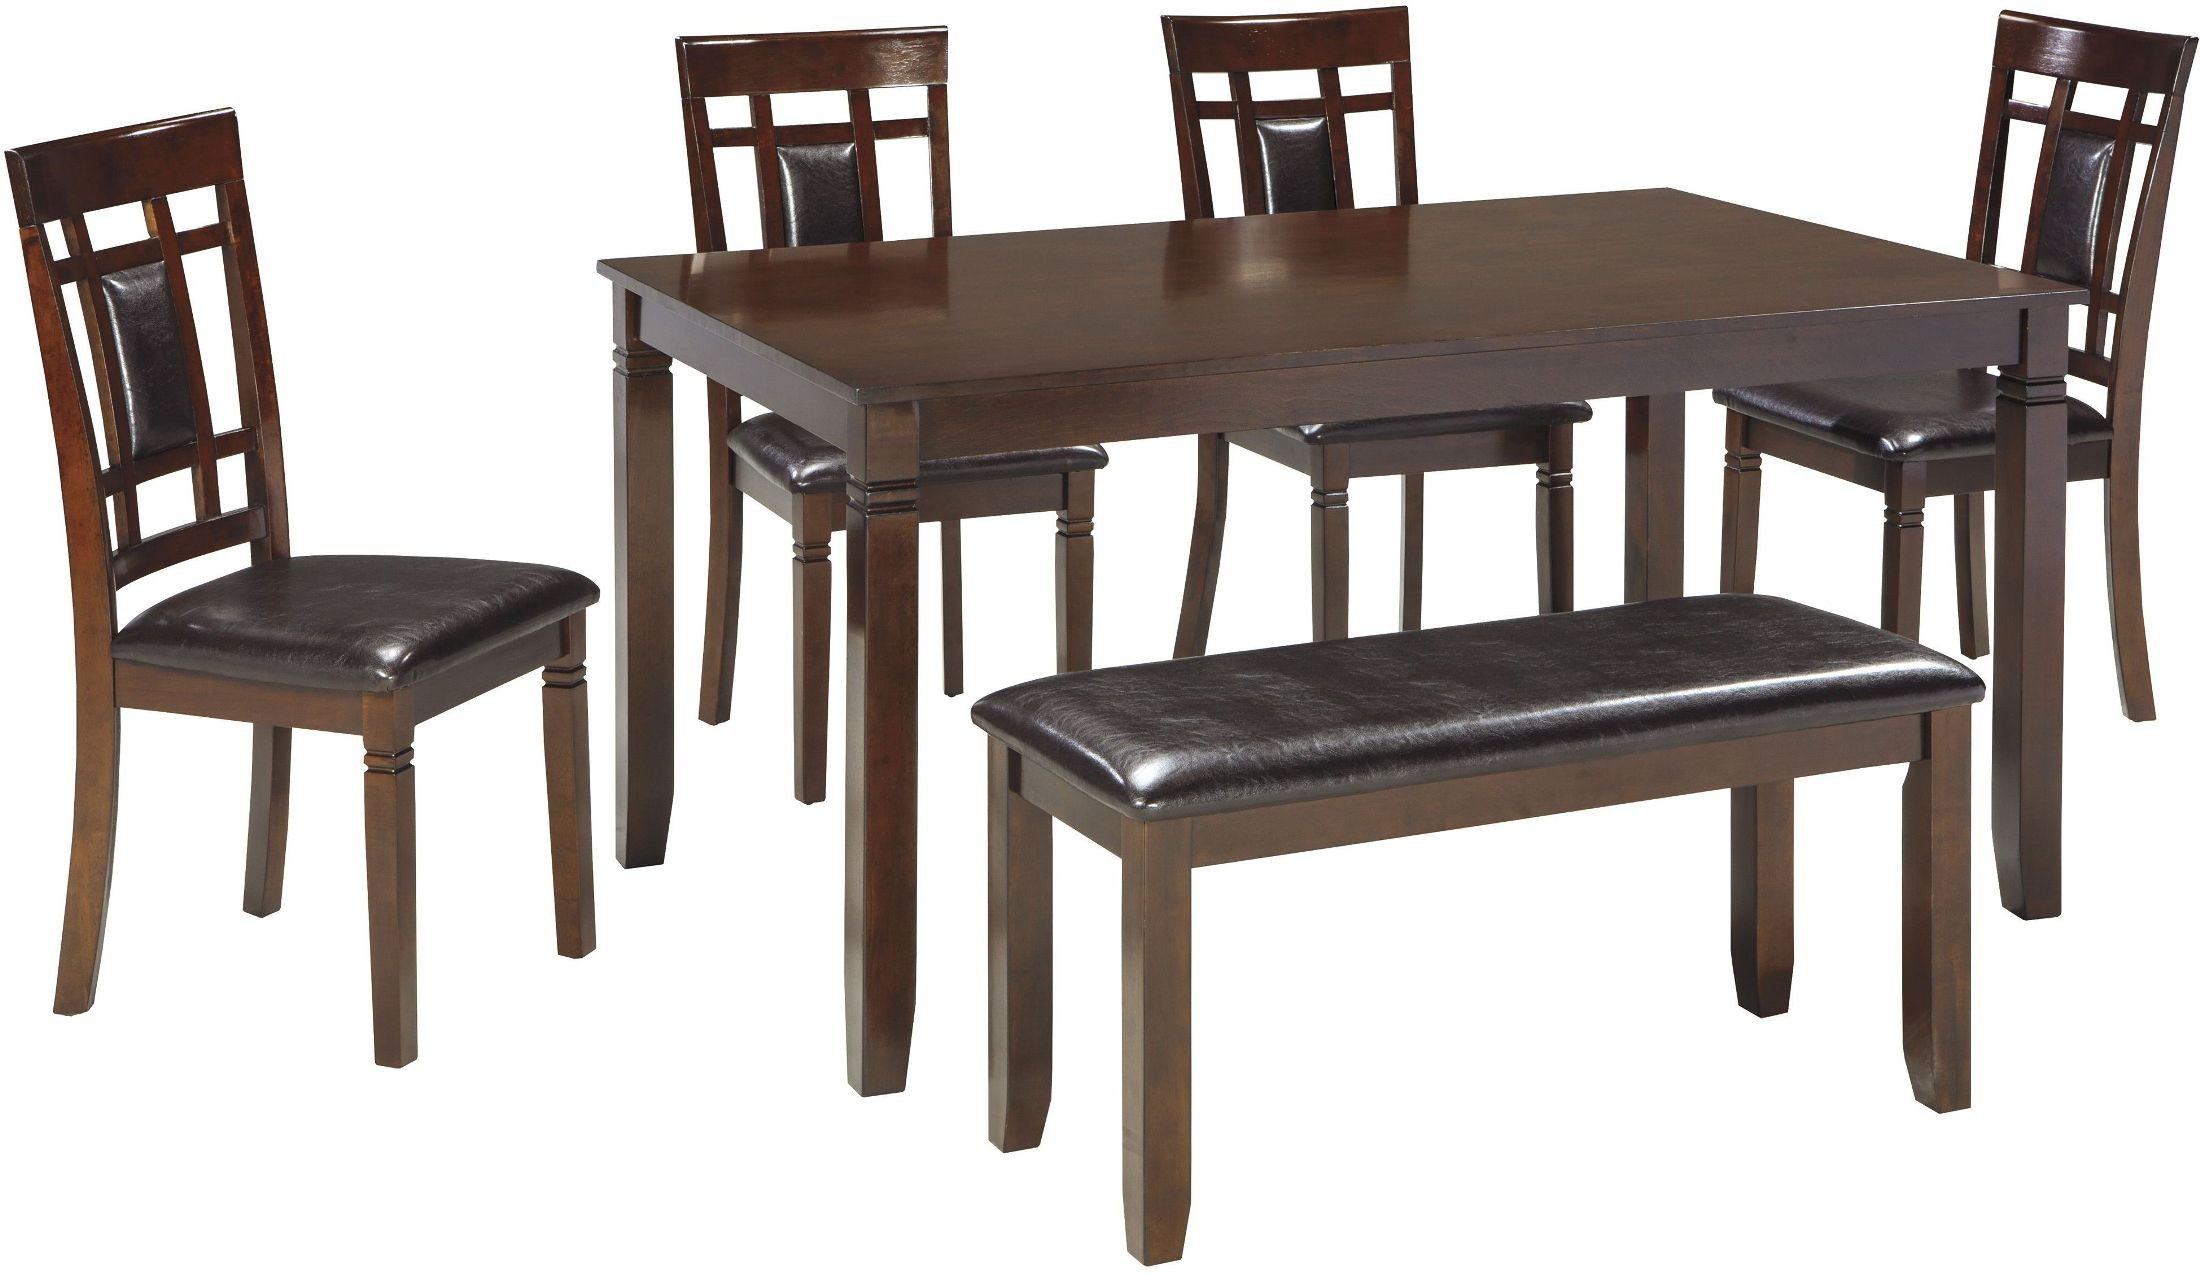 Bennox brown 6 piece rectangular dining room set from for Dining room tables 11 piece